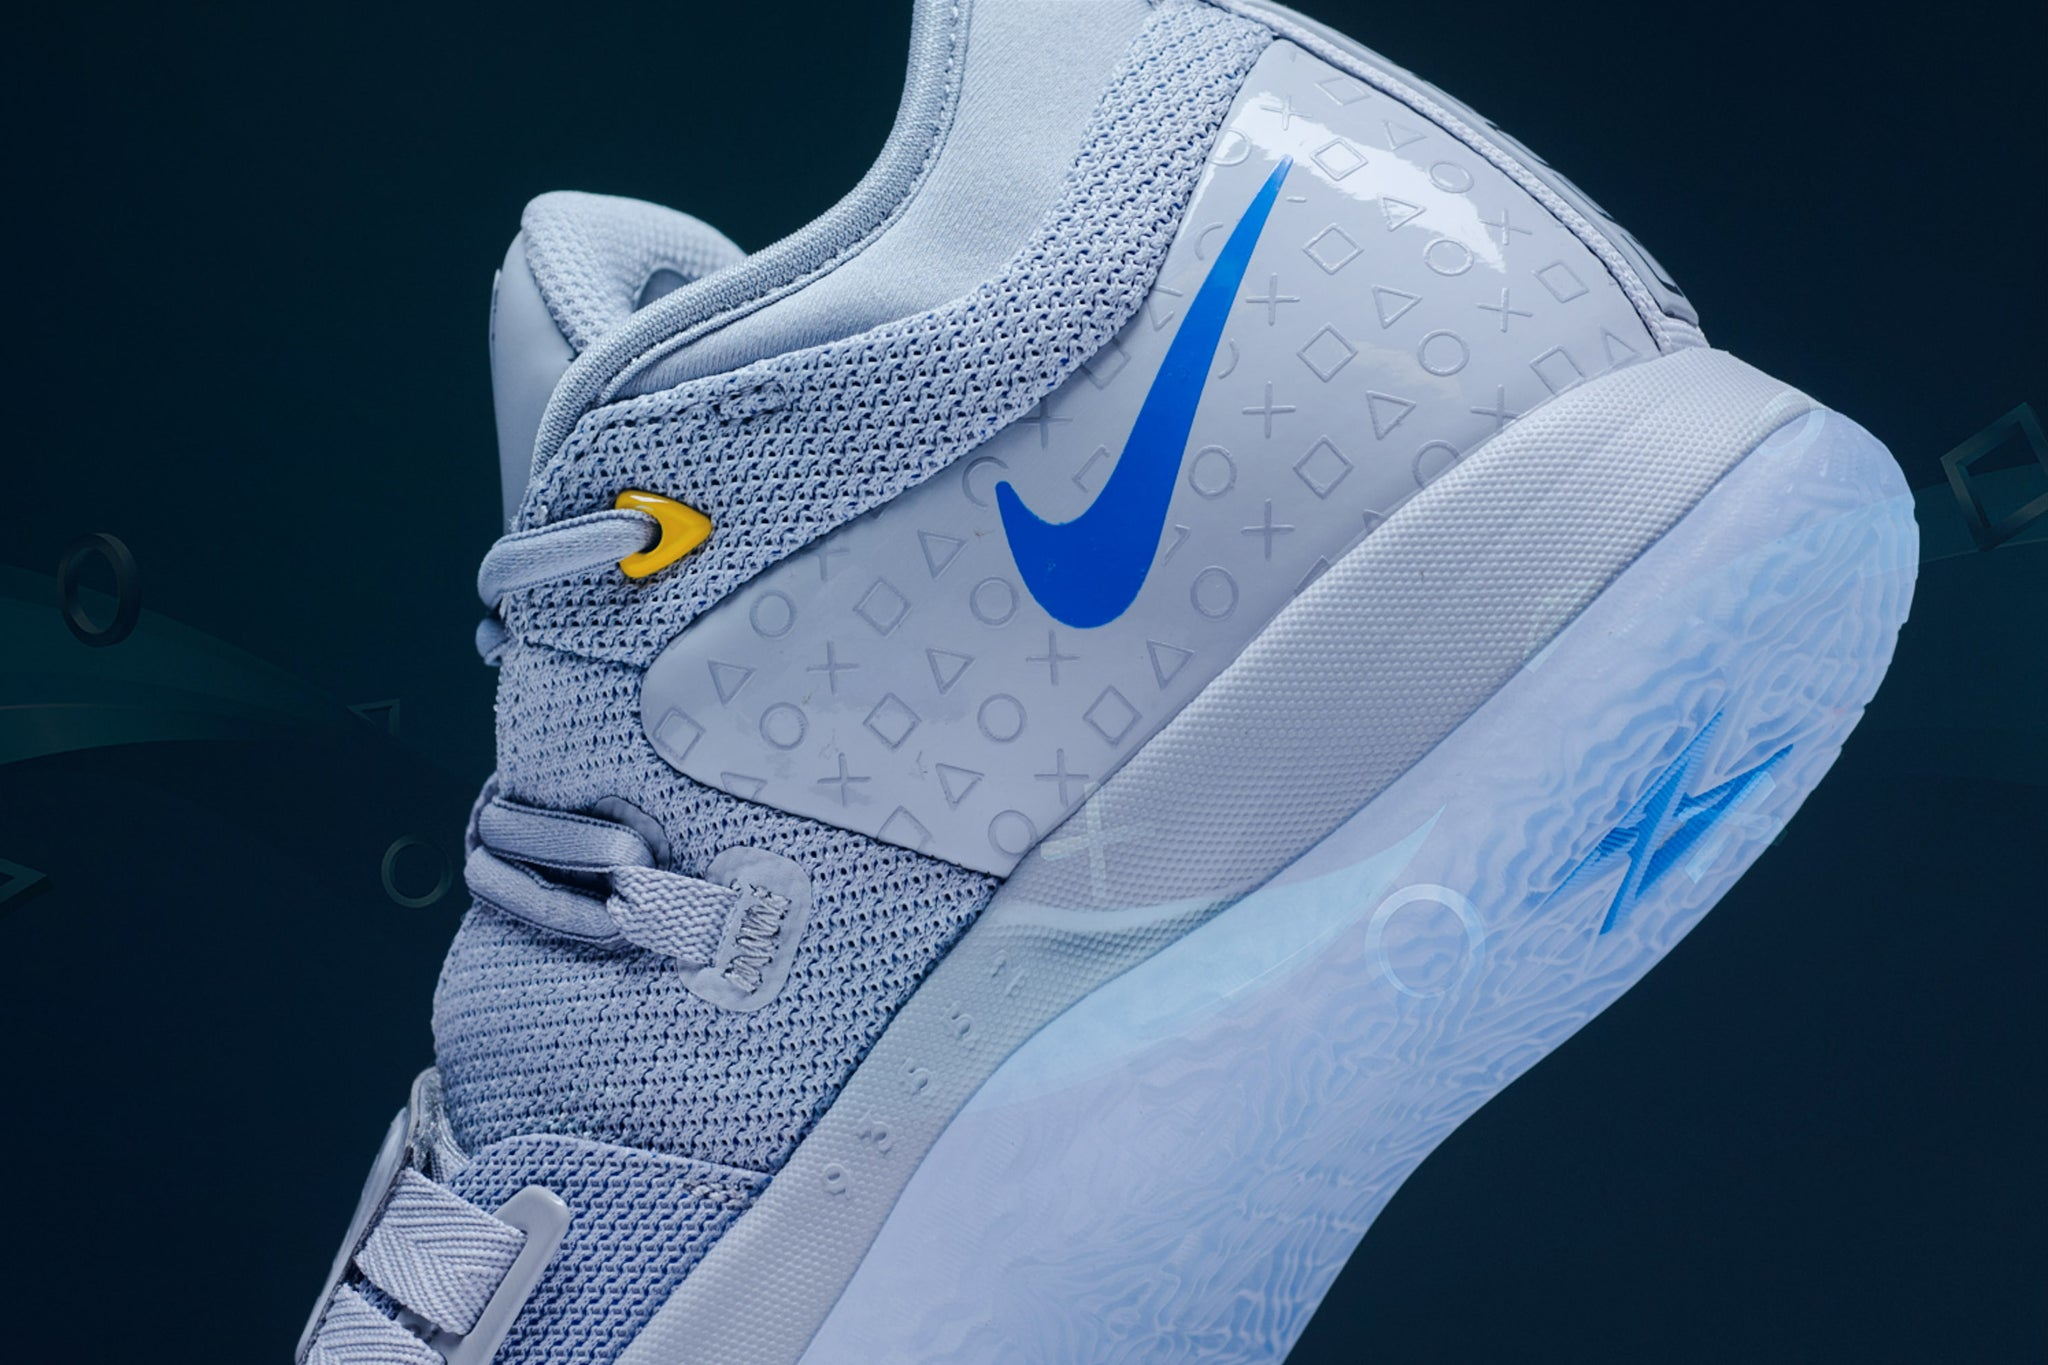 low priced 1e347 6bf67 Nike PG 2.5 x PLAYSTATION - Sneaker Politics